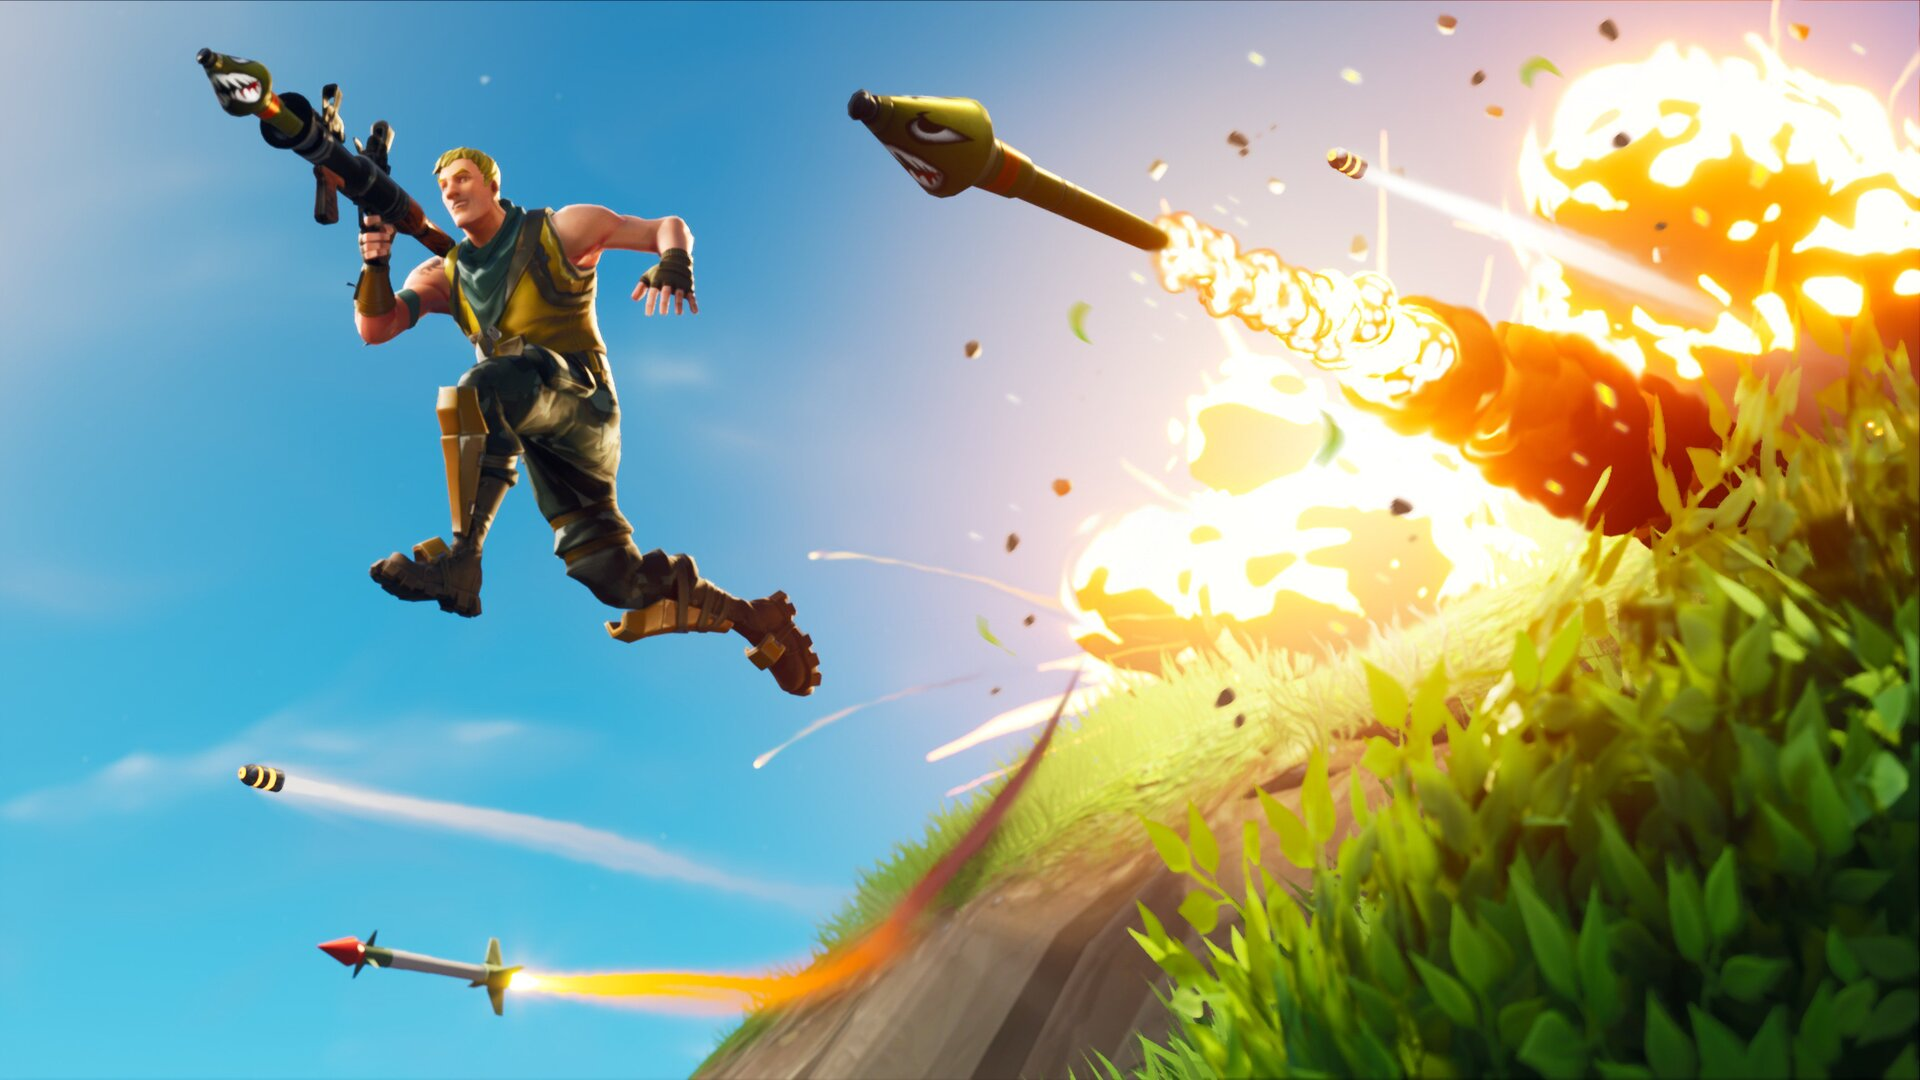 Desktop Wallpaper 2018 Video Game Fortnite Art Hd: 1920x1080 Fortnite 2018 Laptop Full HD 1080P HD 4k